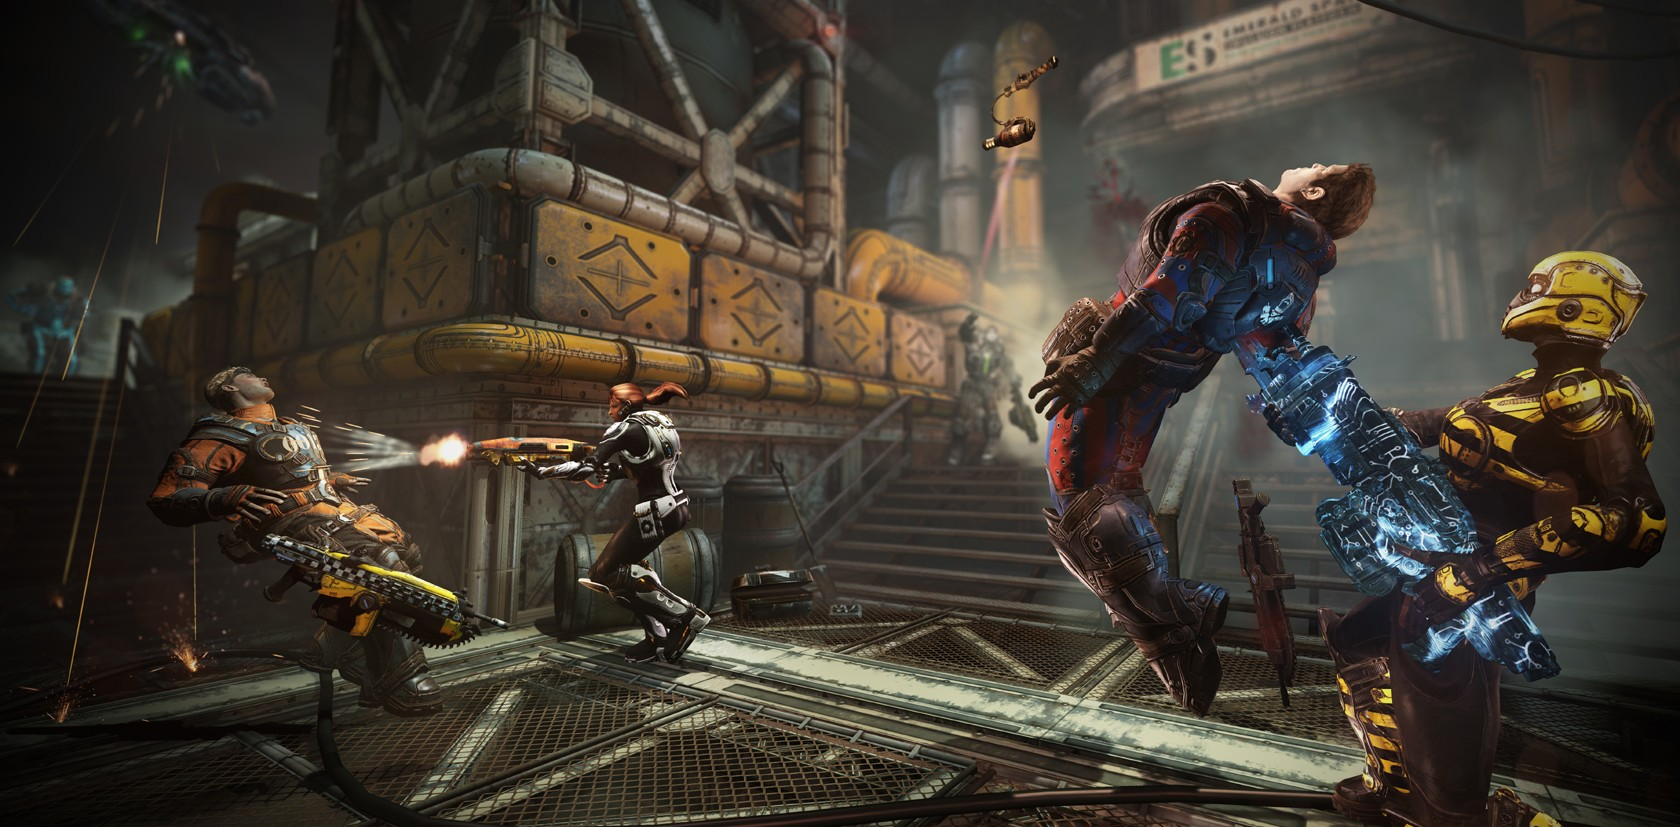 'Gears of War: Judgment' has second campaign set in Gears of War 3